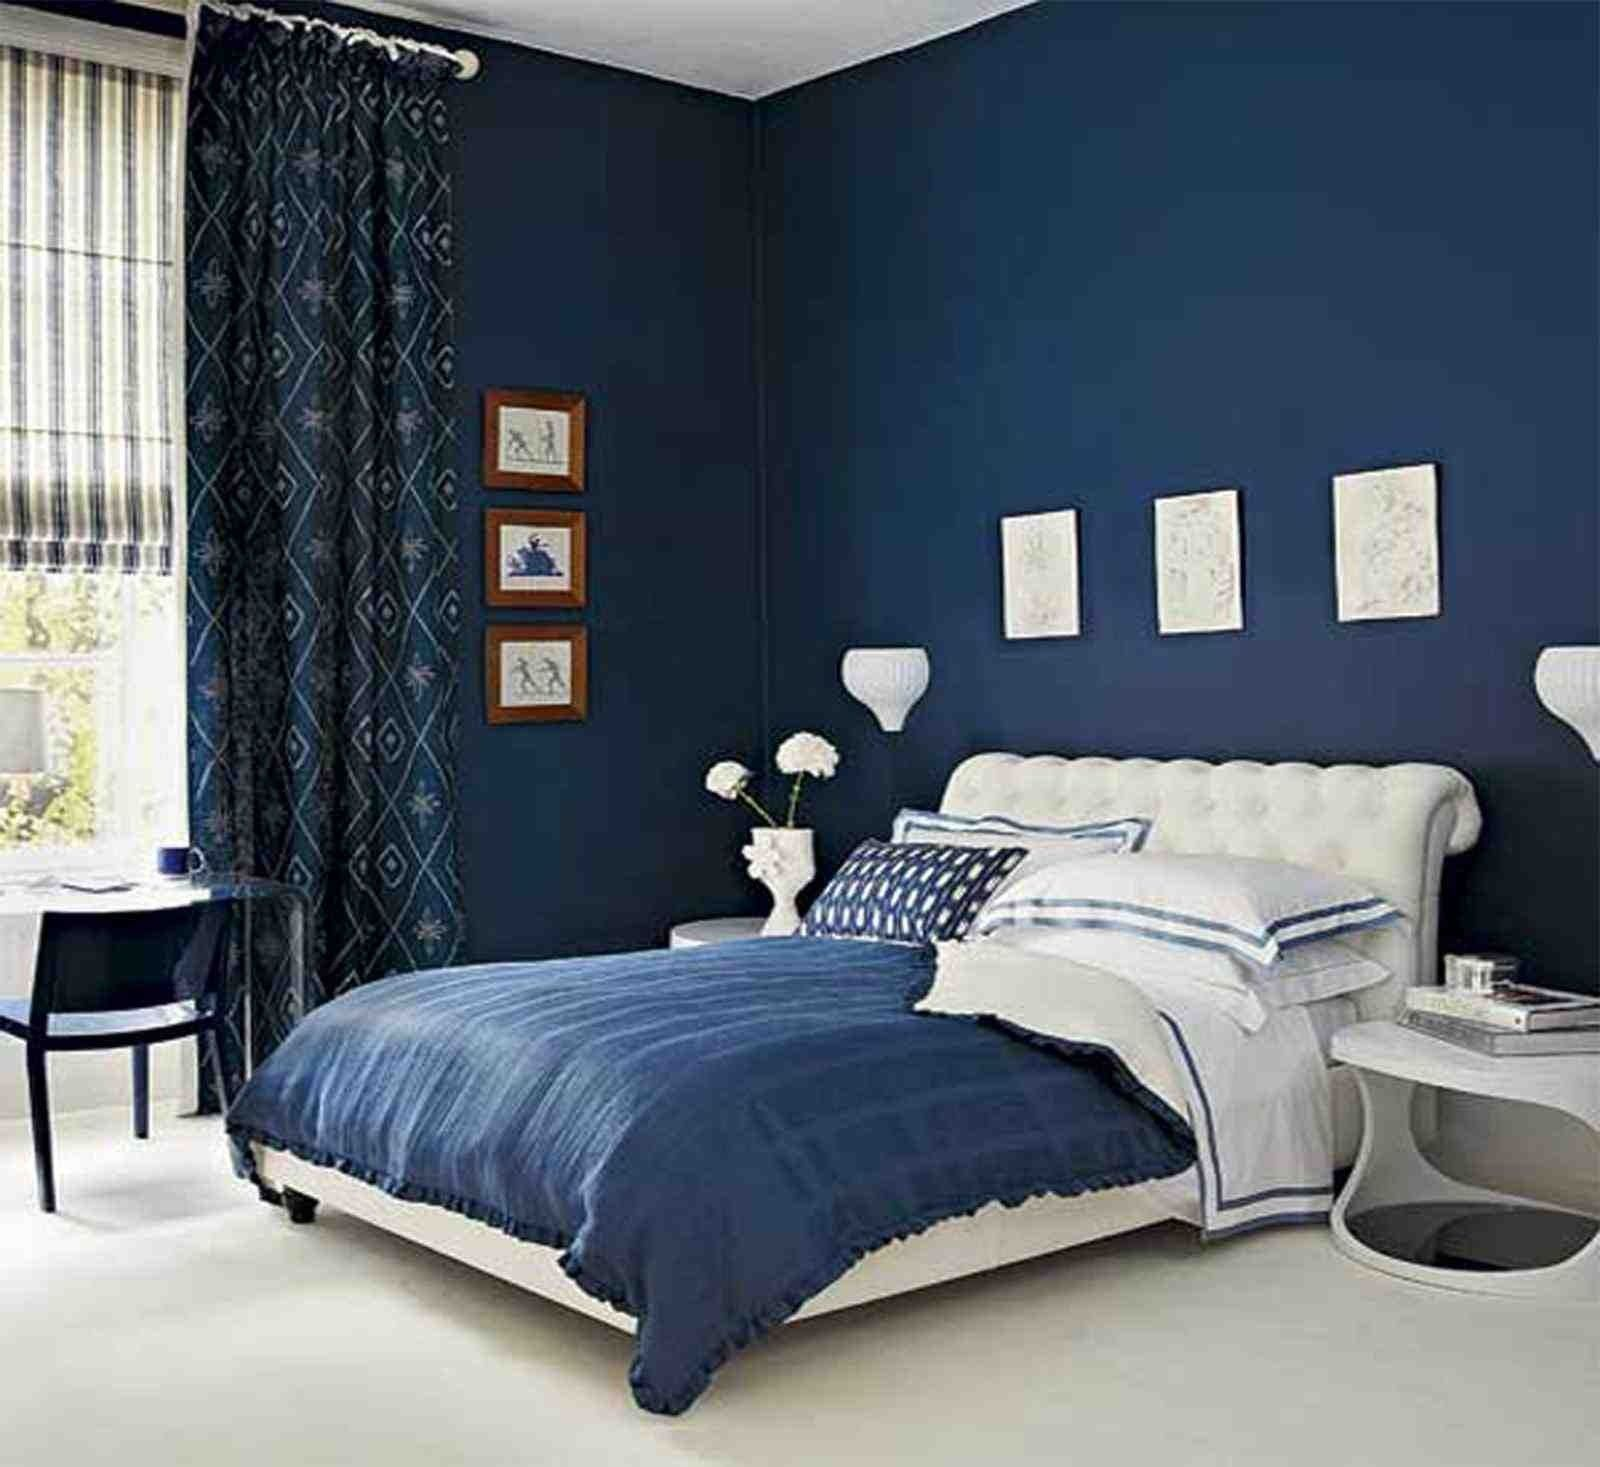 Dark Blue Master Bedroom Ideas Keleleplink for Blue Master Bedroom